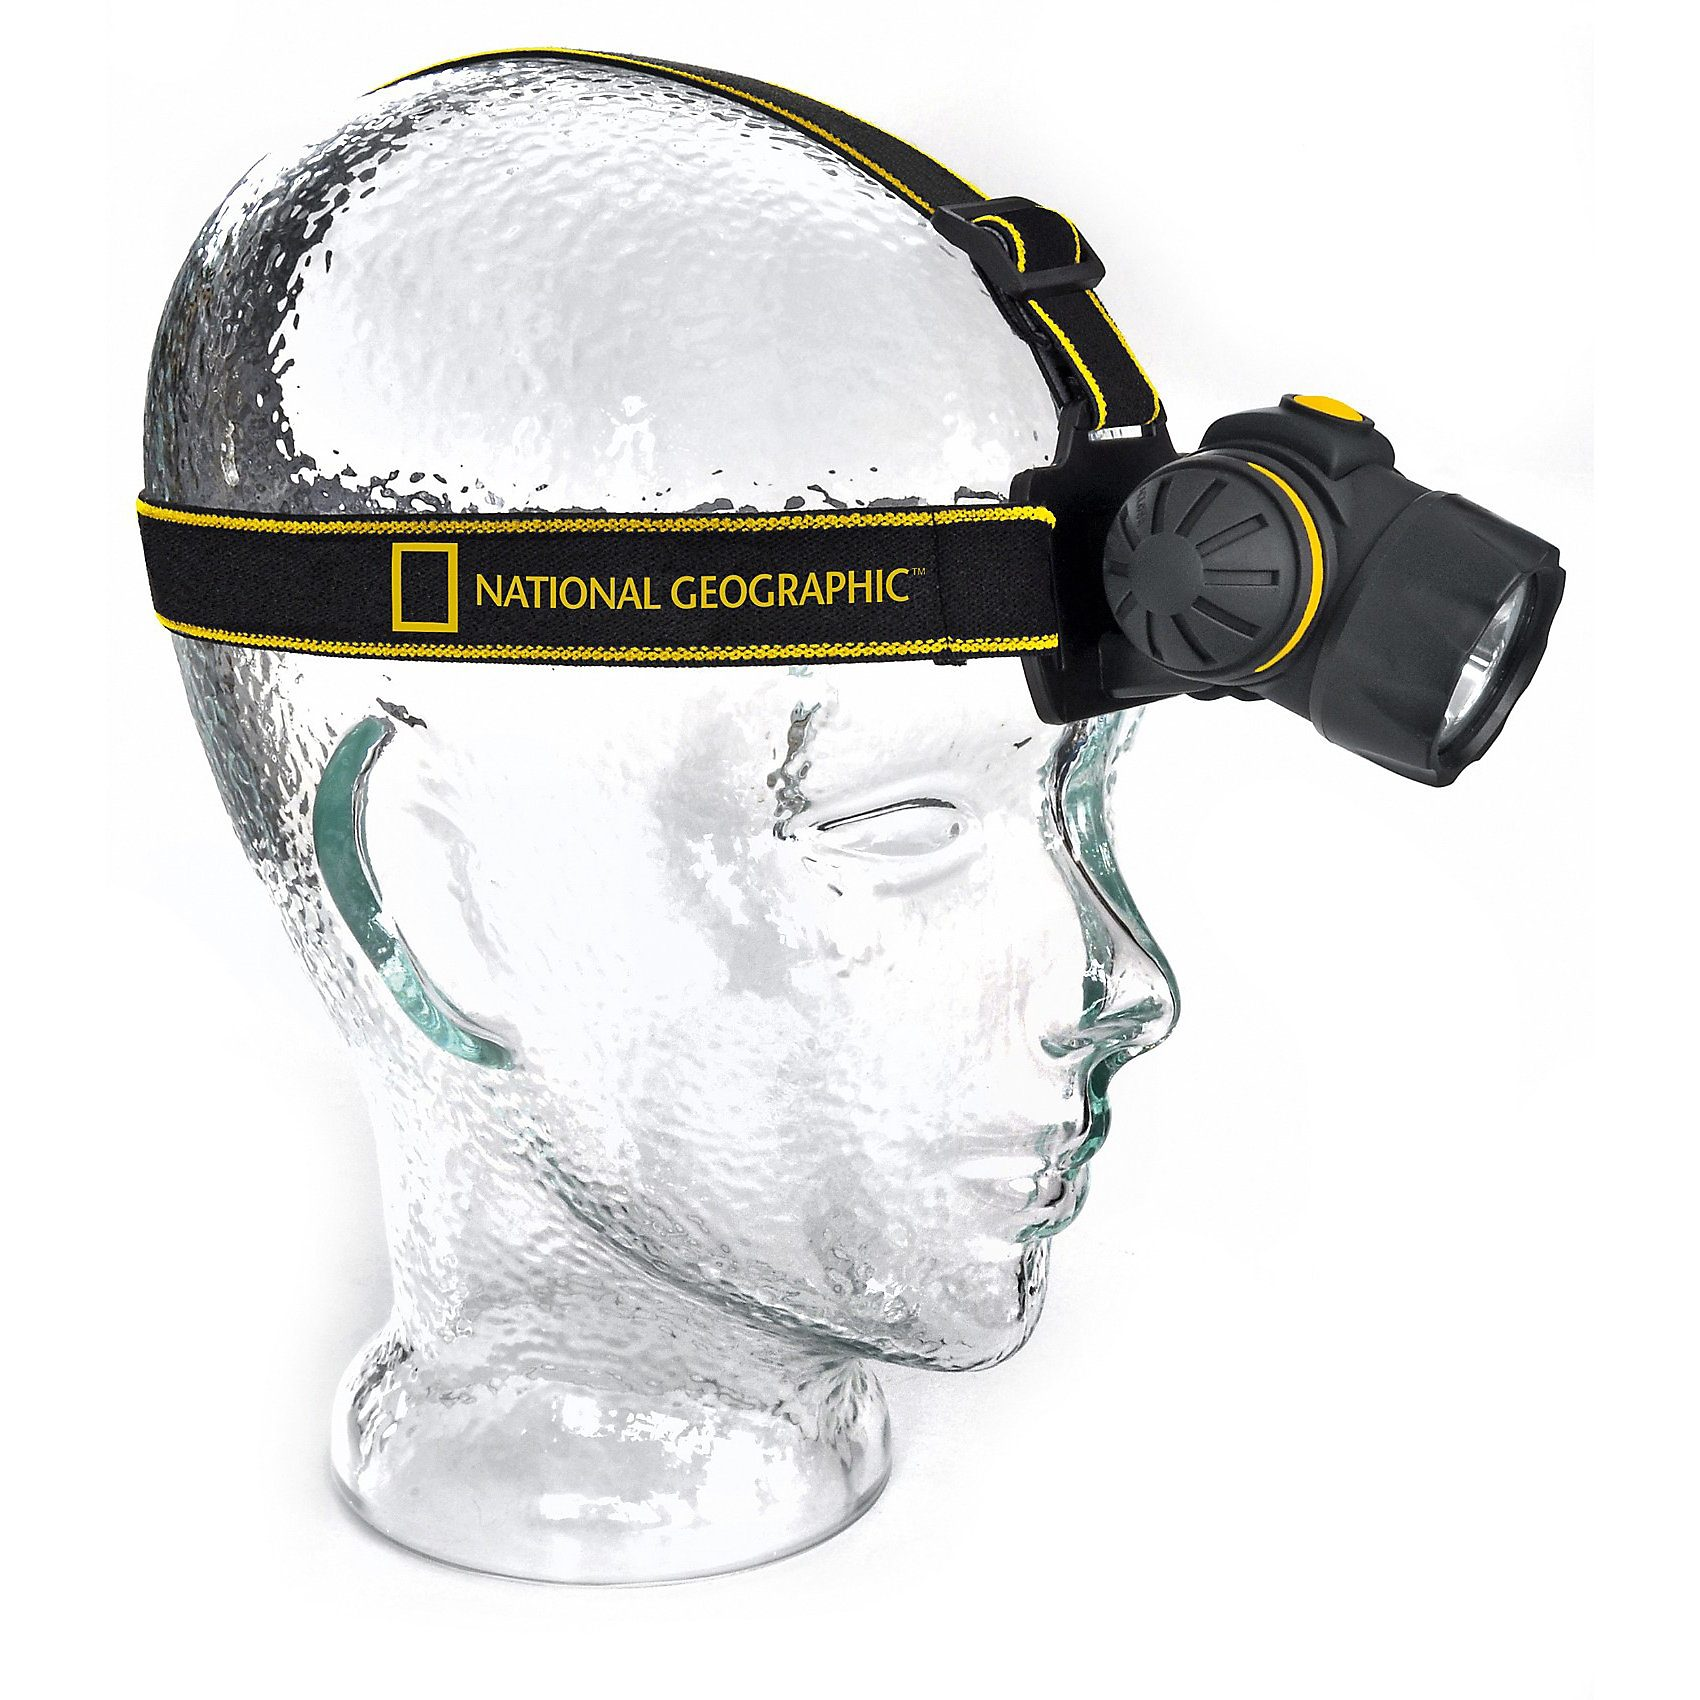 Bresser National Geographic LED Stirnlampe